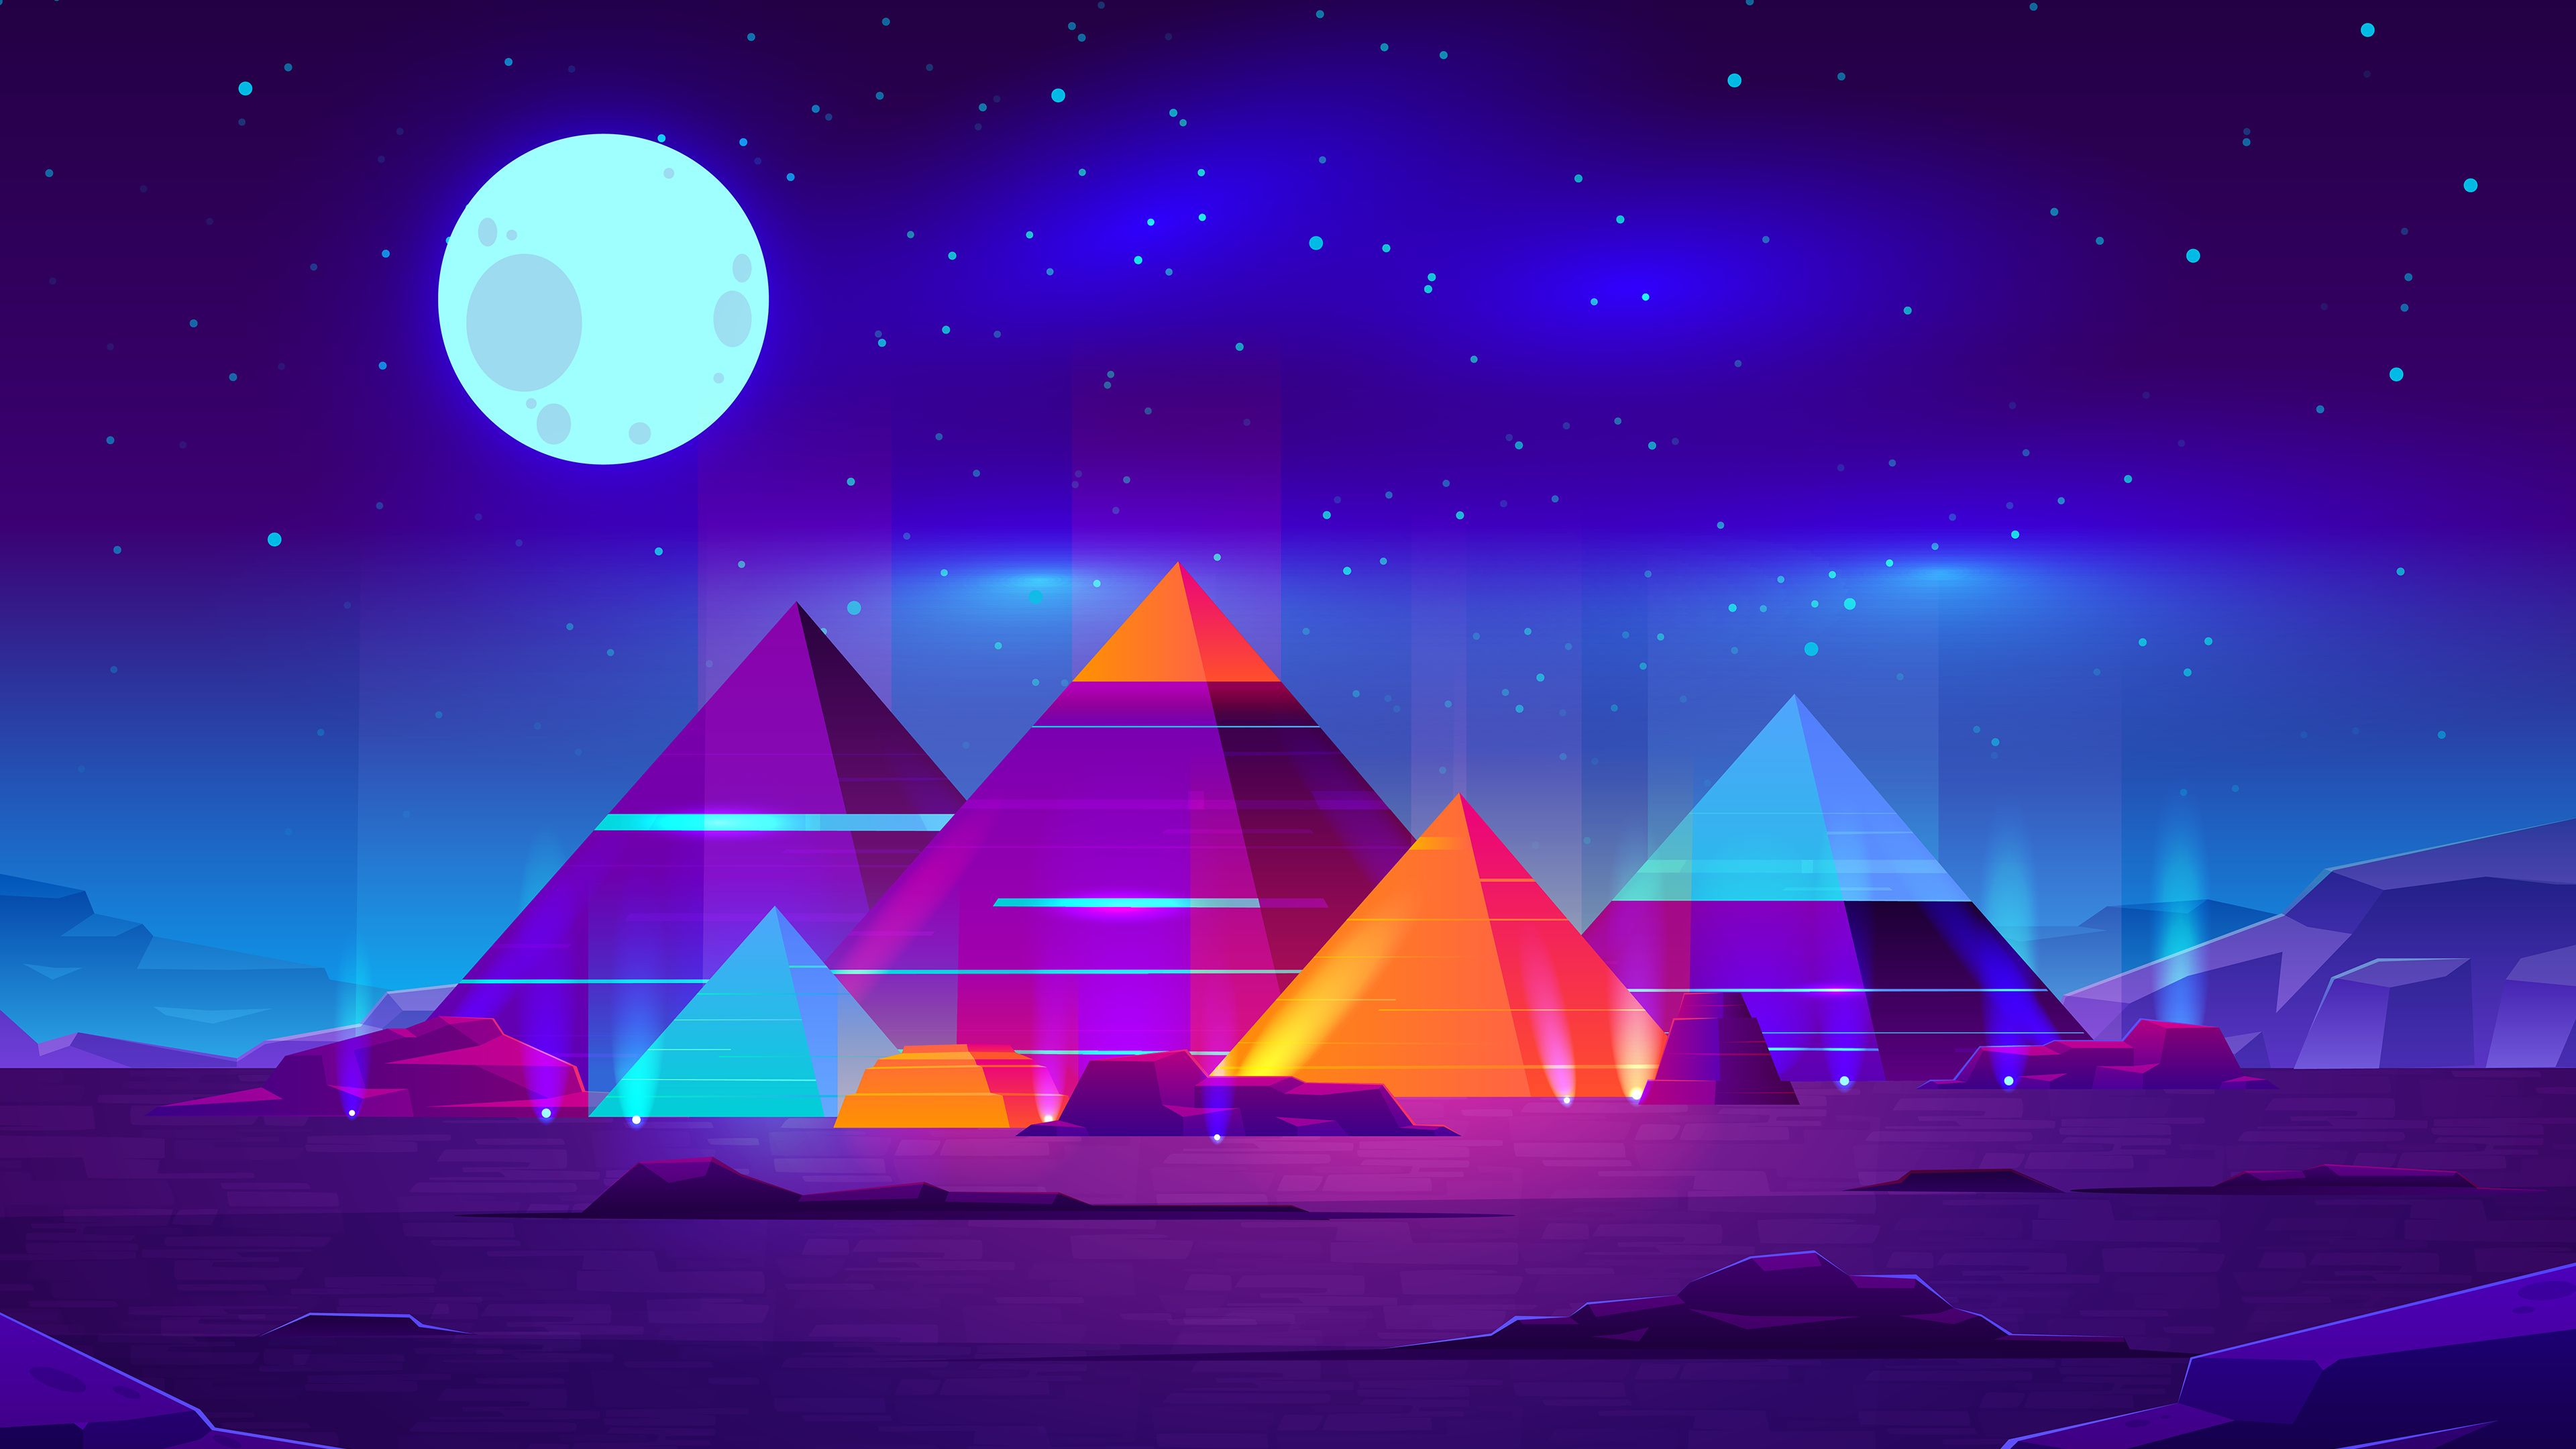 Pyramids Minimalist 4k Pyramids Wallpapers Minimalist Wallpapers Minimalism Wallpapers Hd Wallpapers Digital Minimalist Wallpaper Night Landscape Pyramids